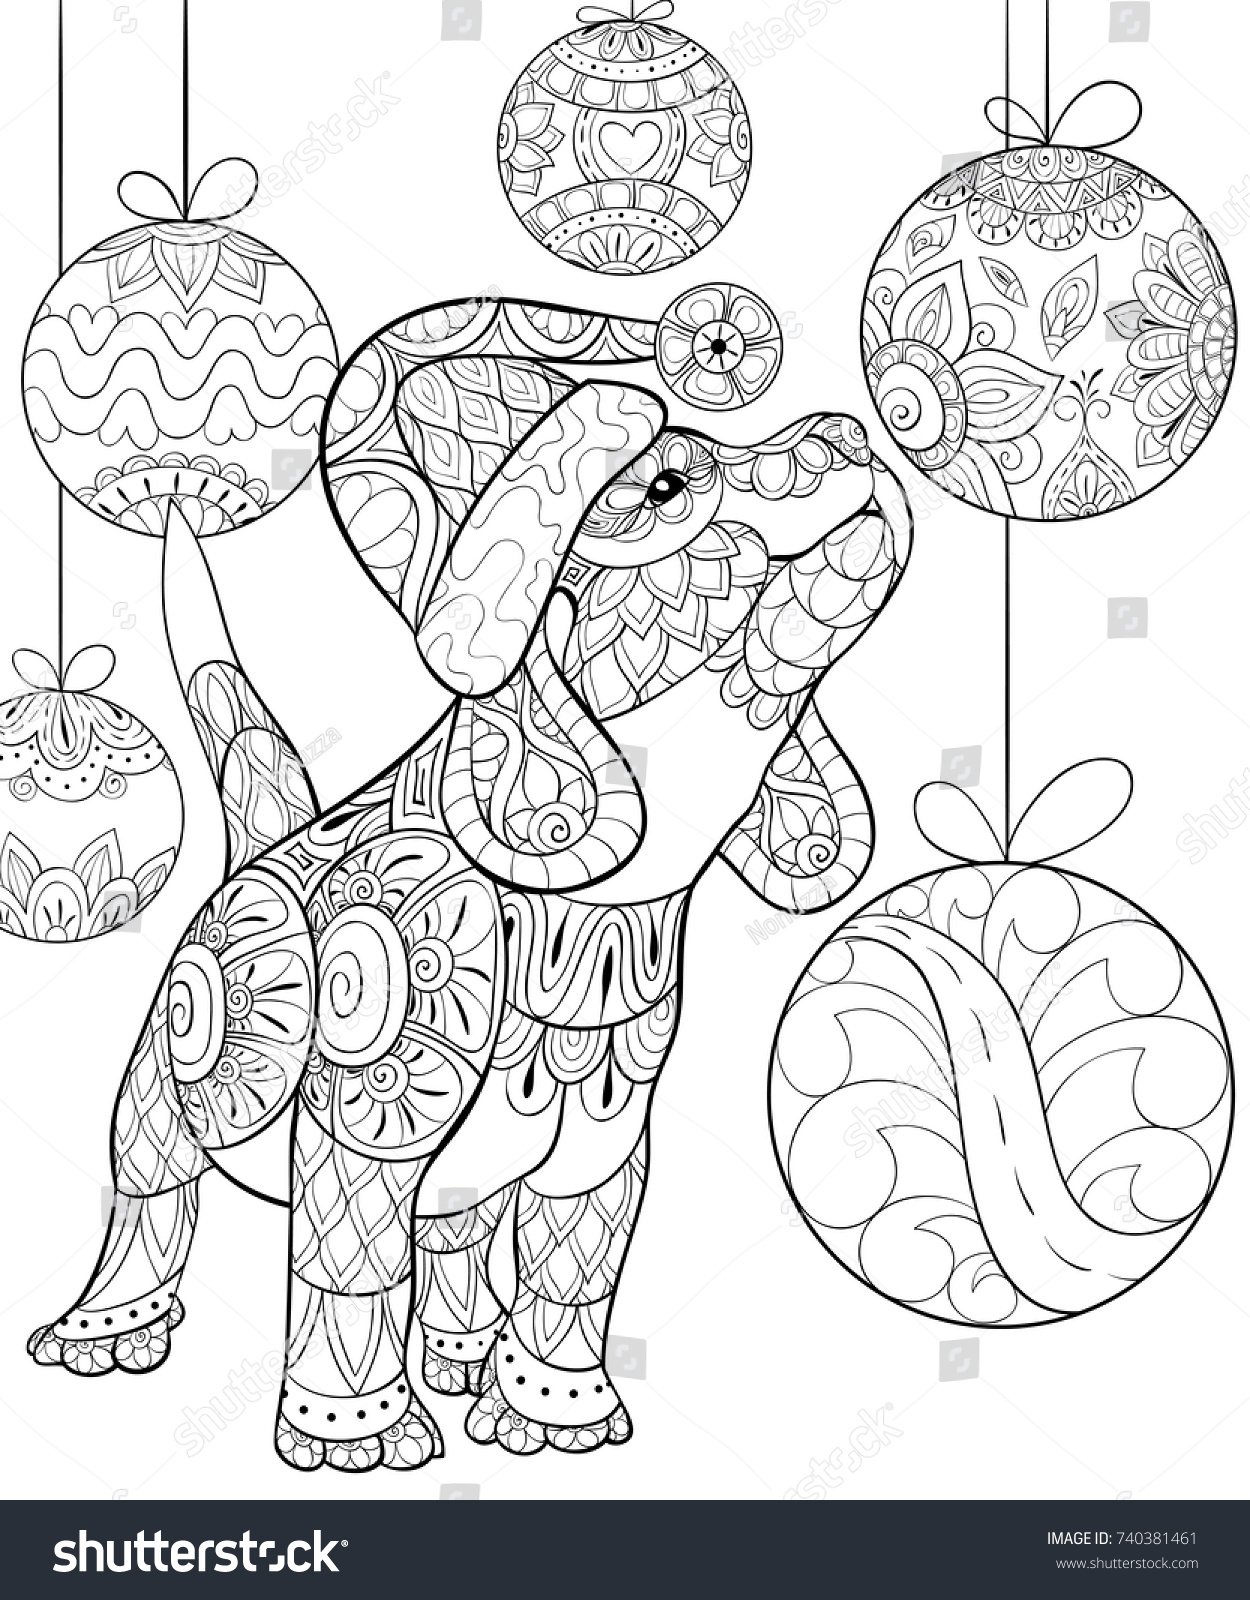 Adult Coloring Pagebook Cute Christmas Puppydog Stock ...